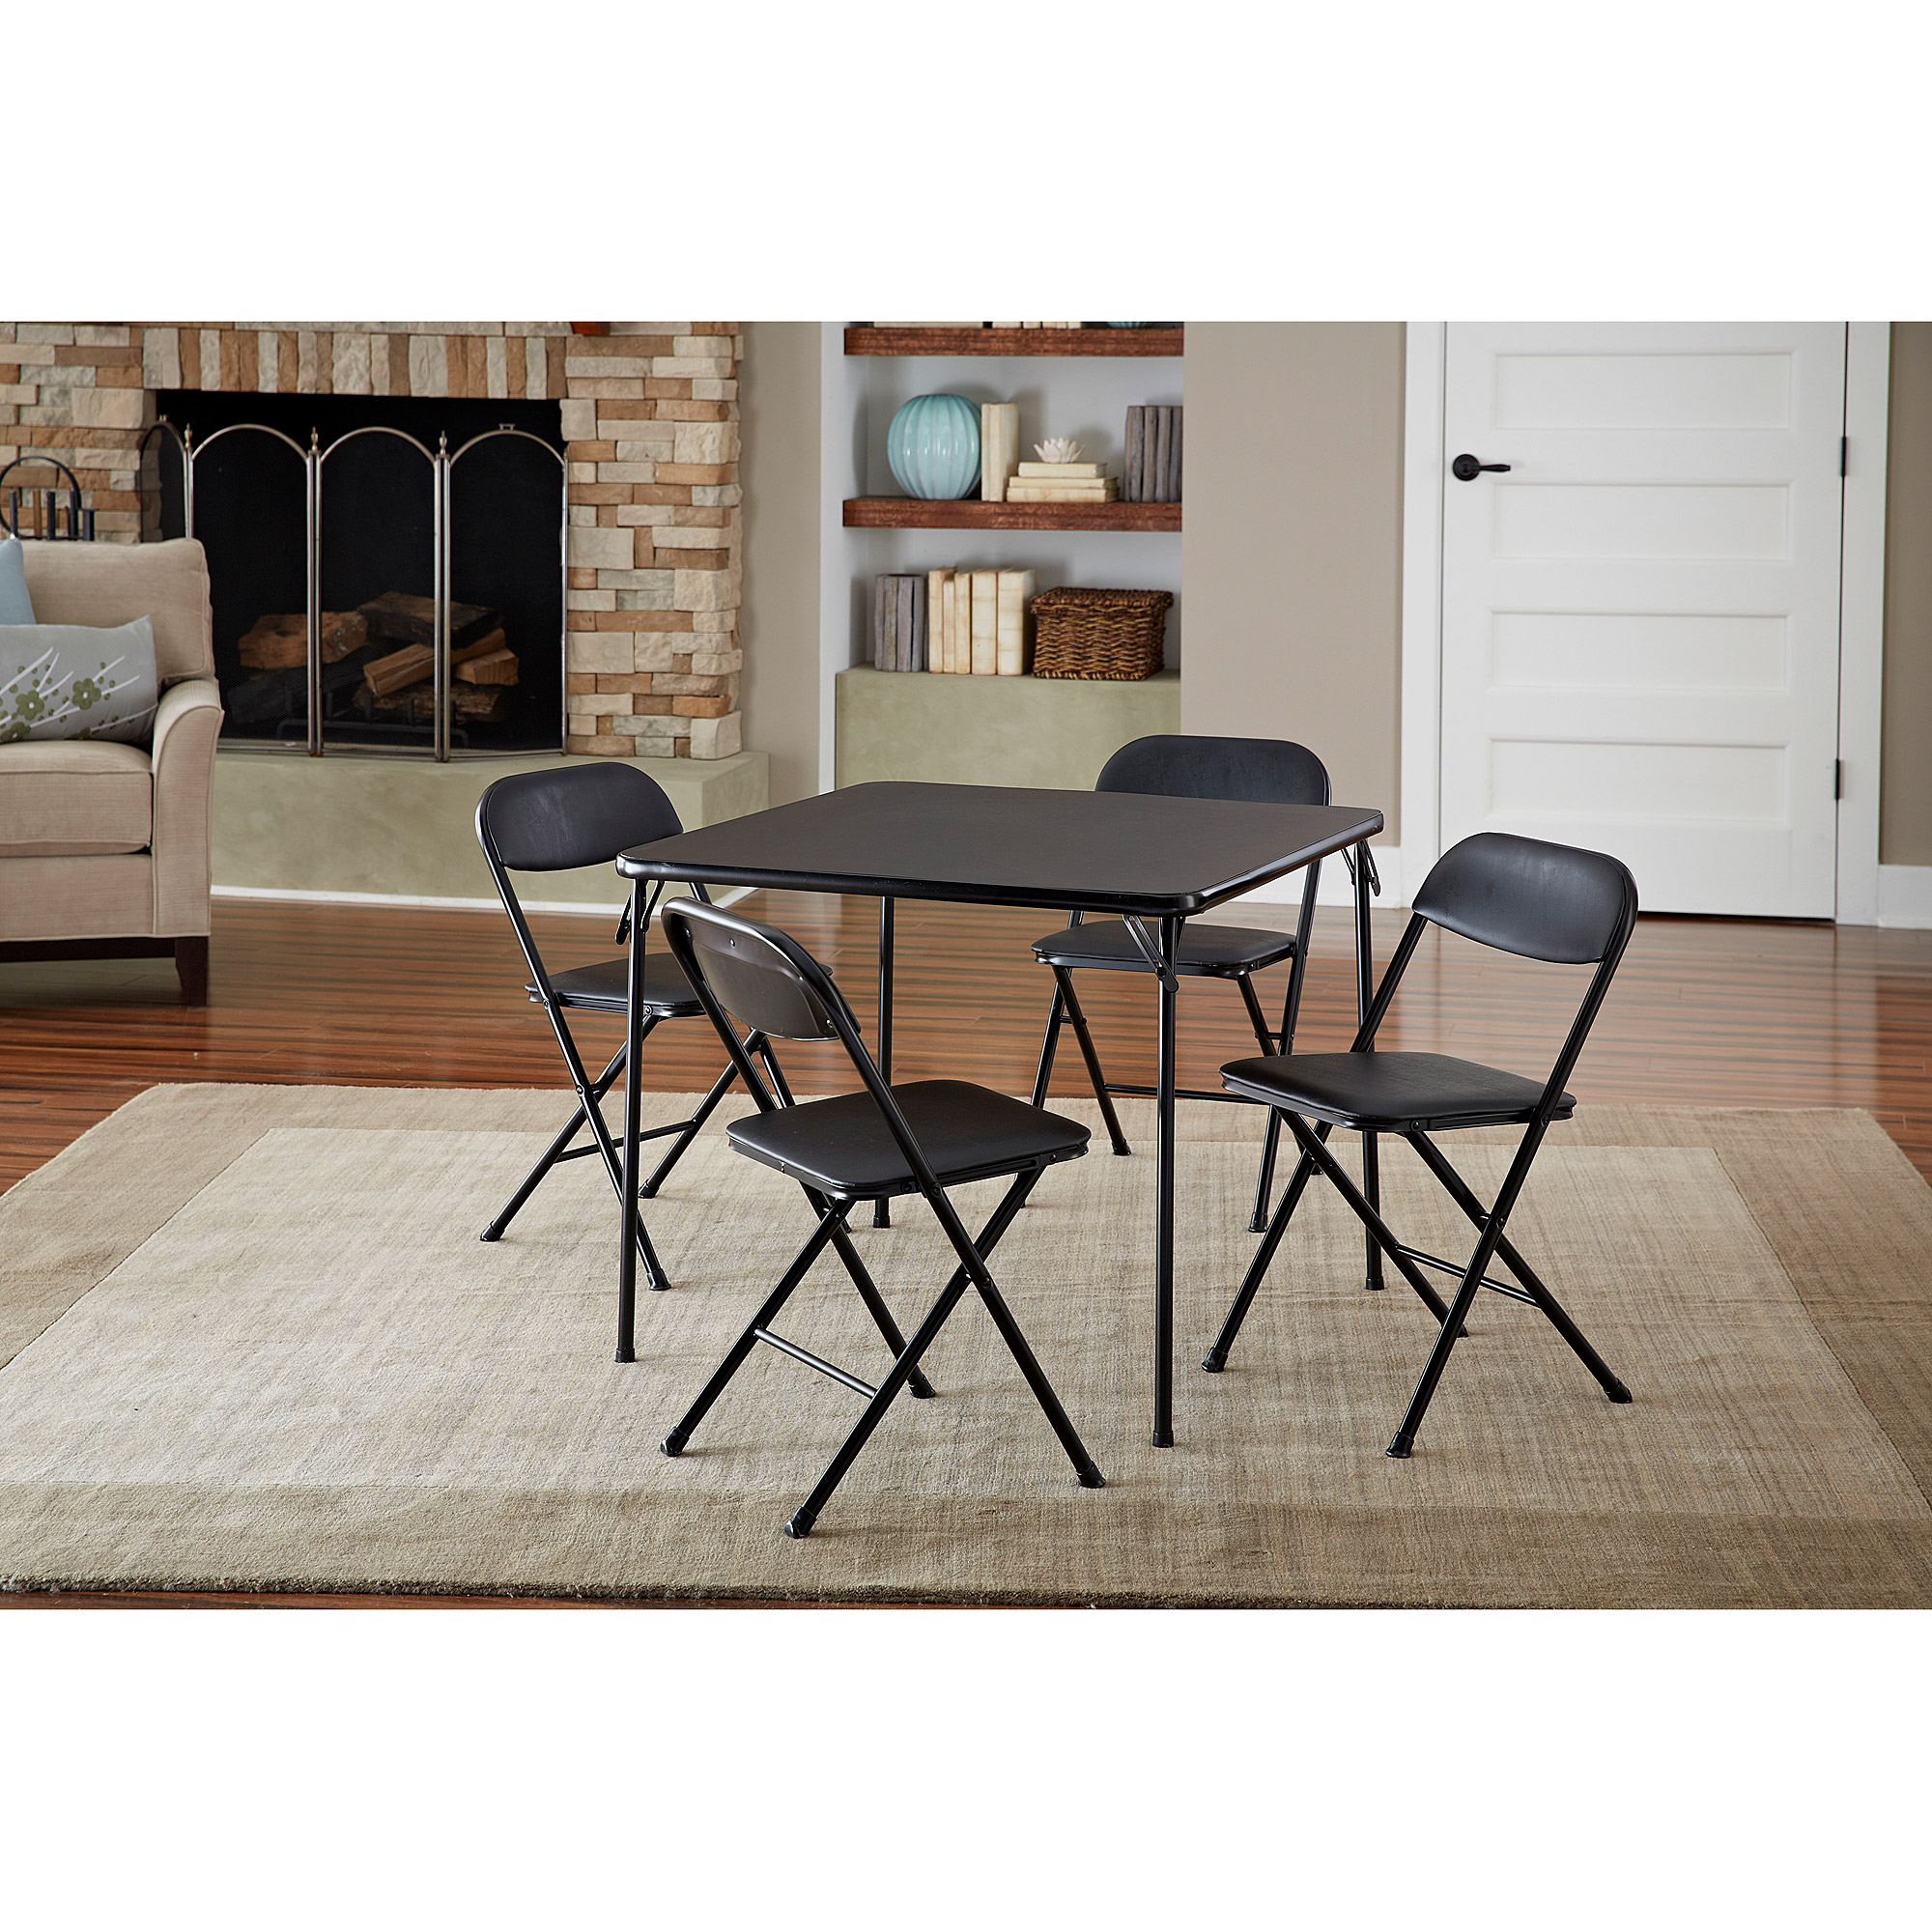 walmart table and chair sets 2 person camping cosco 5 piece card set black com